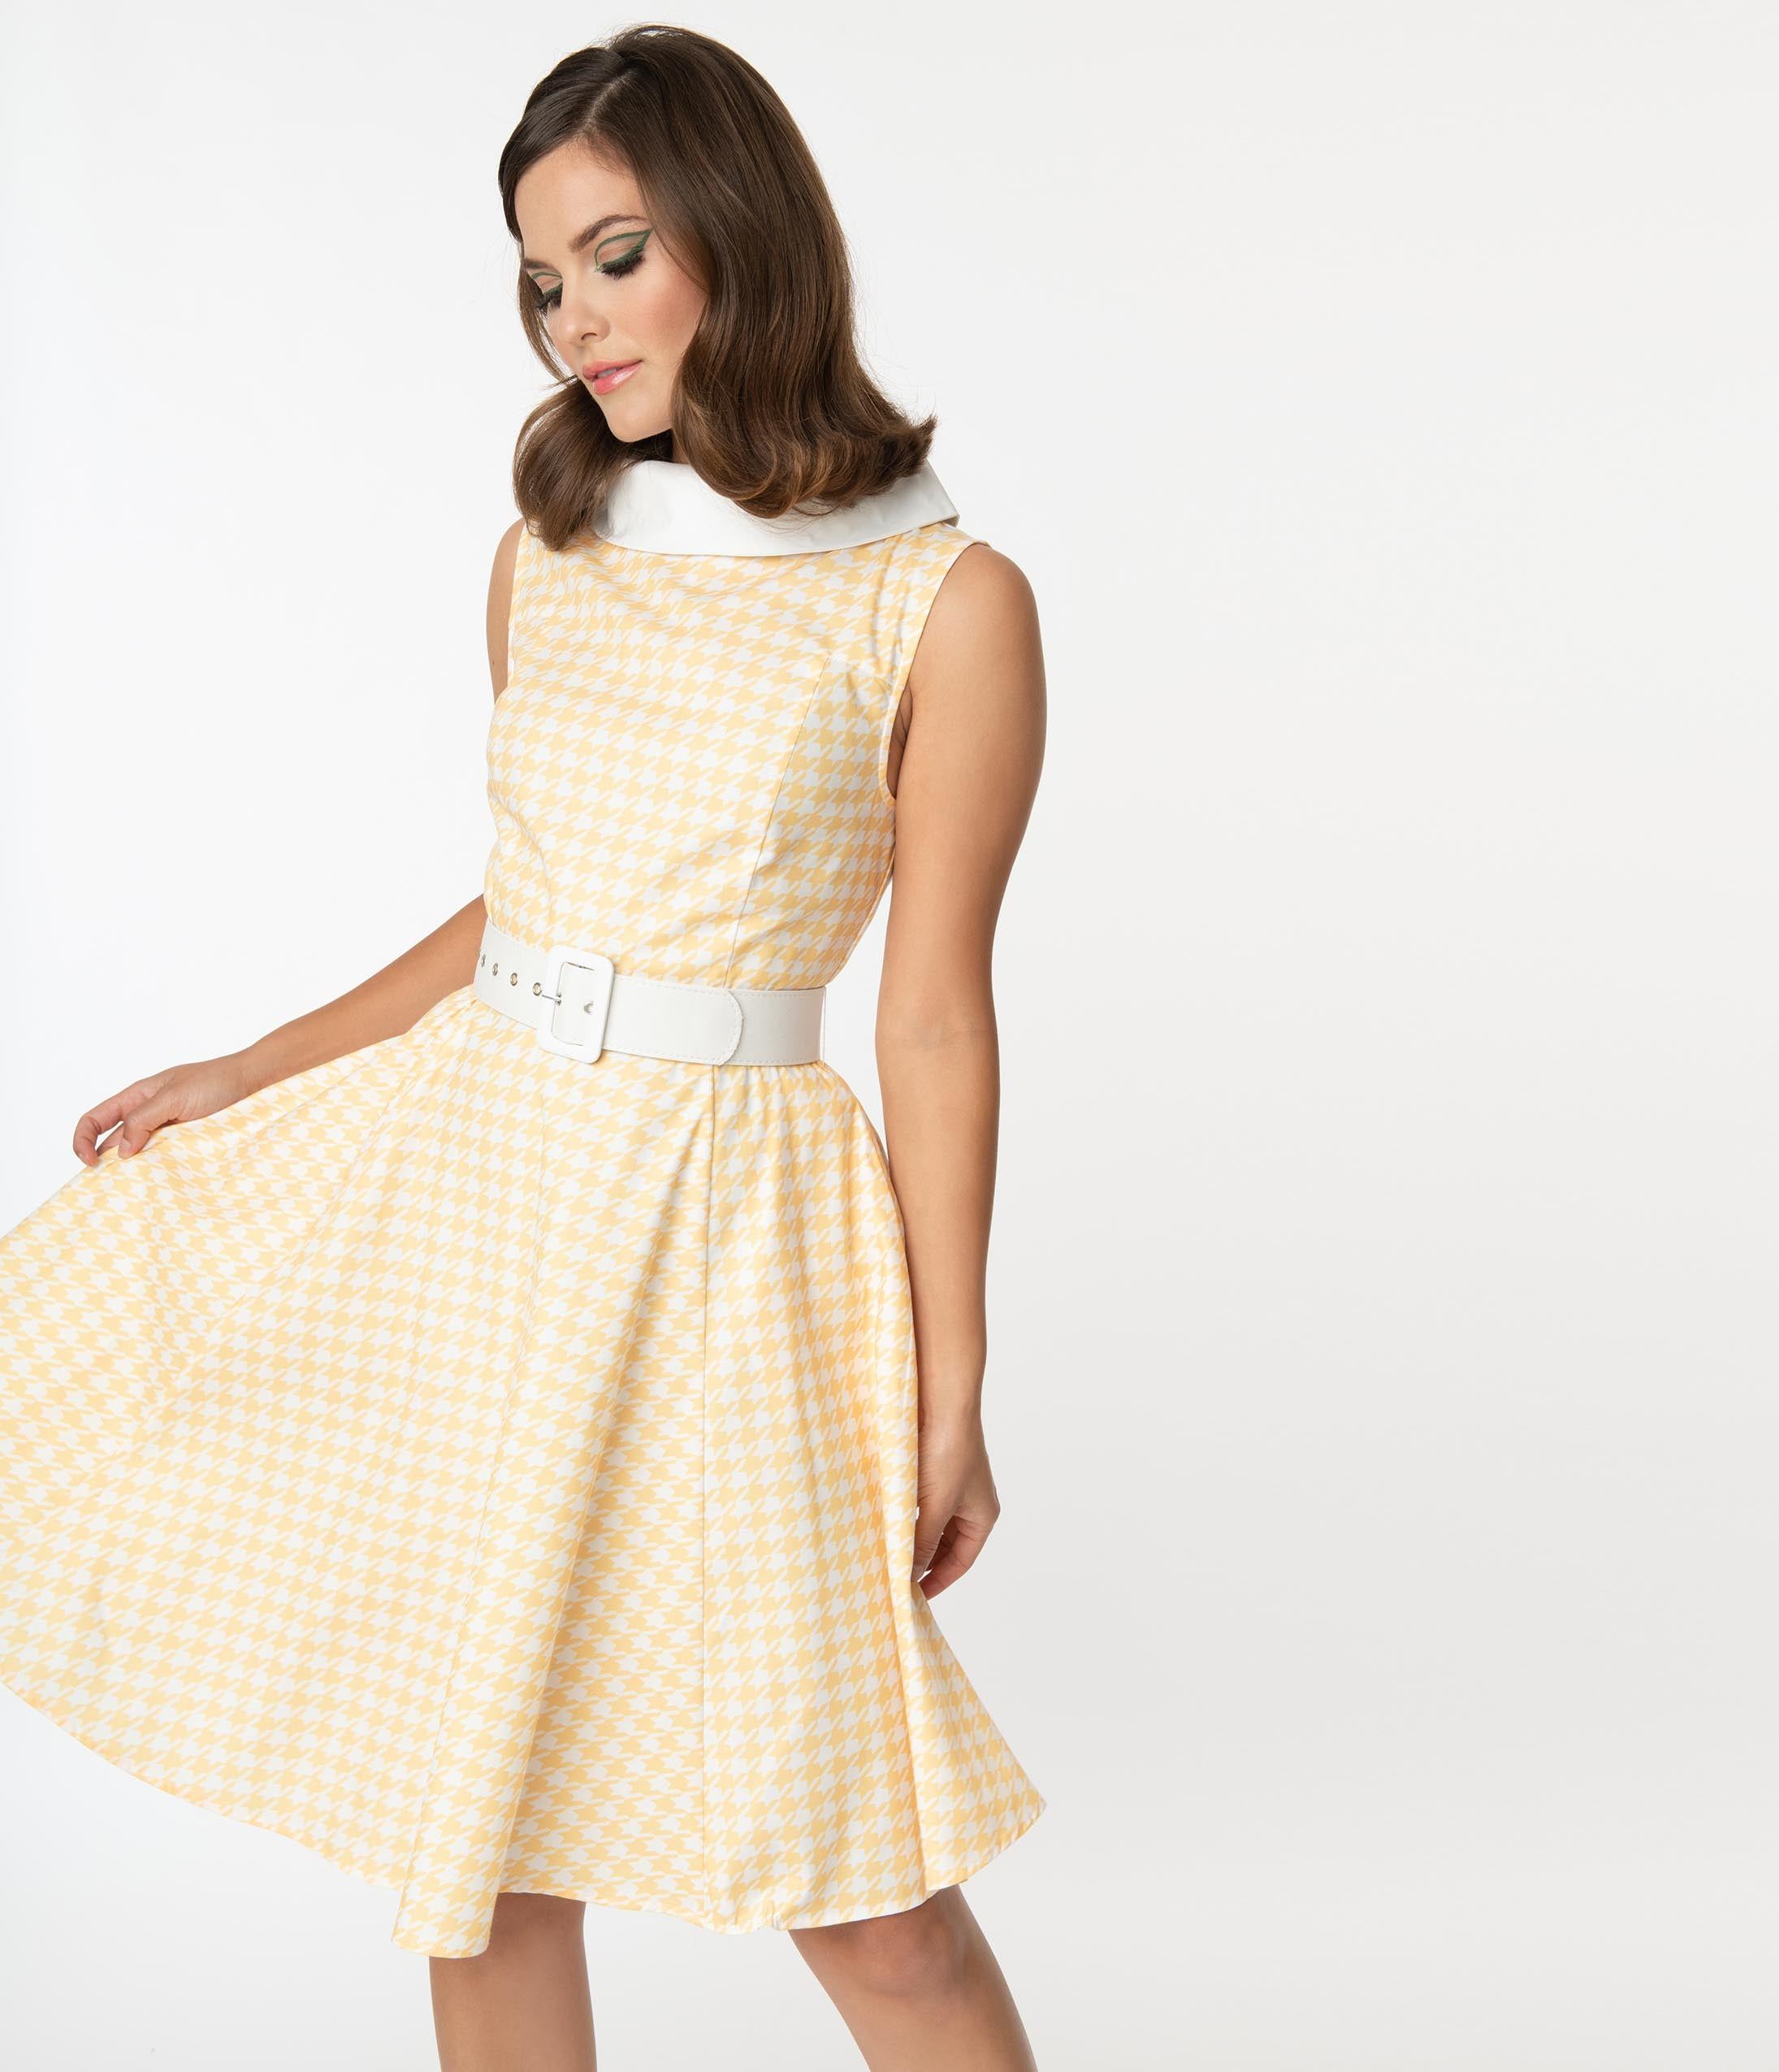 Pin Up Dresses | Pinup Clothing & Fashion Smak Parlour Yellow Houndstooth Power Pose Swing Dress $68.00 AT vintagedancer.com